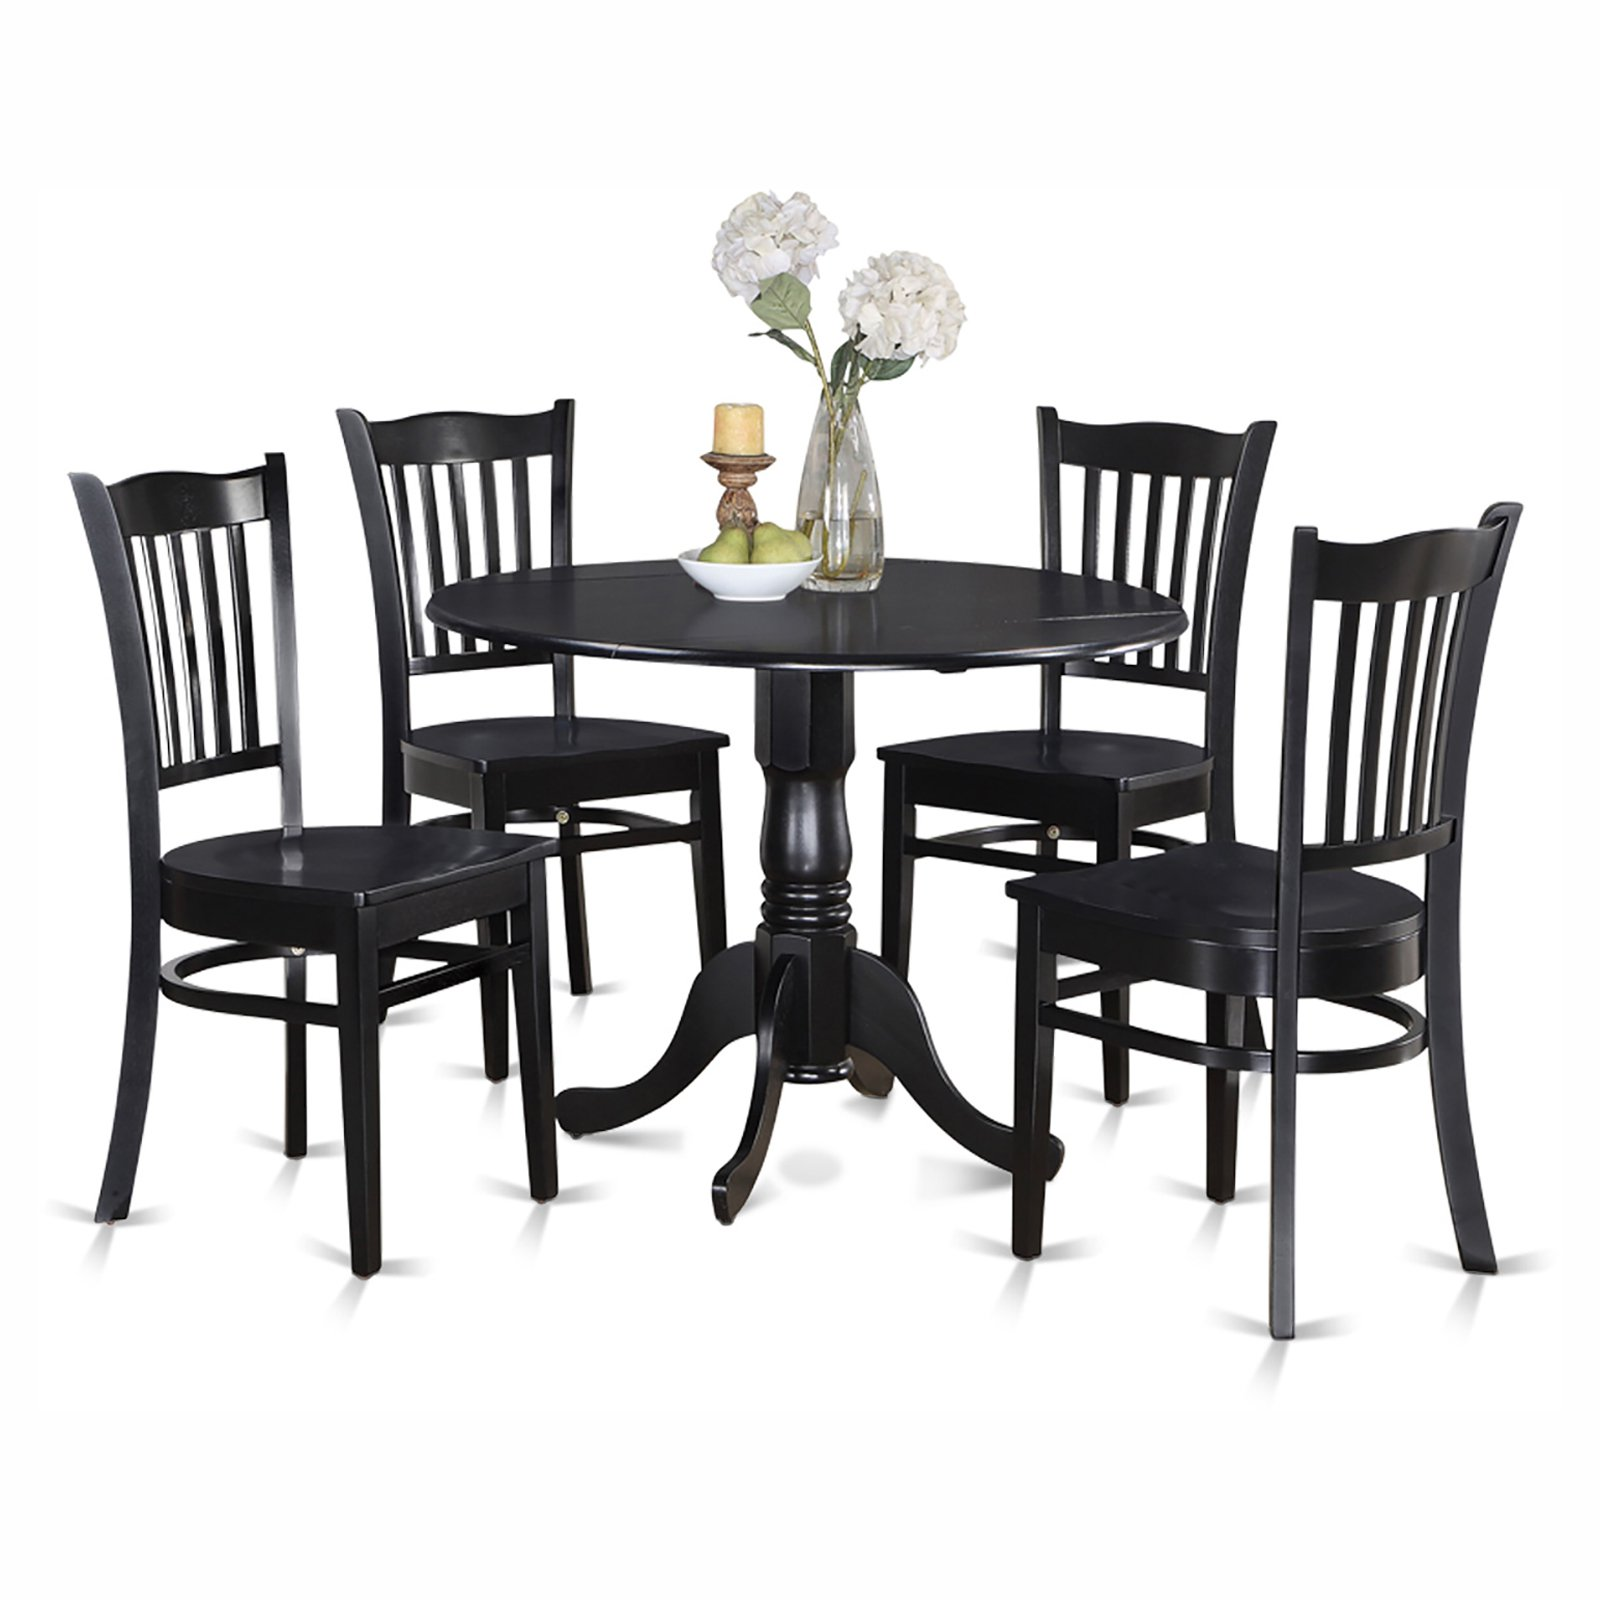 East West Furniture Dublin 5 Piece Drop Leaf Dining Table Set with Groton Wooden Seat Chairs